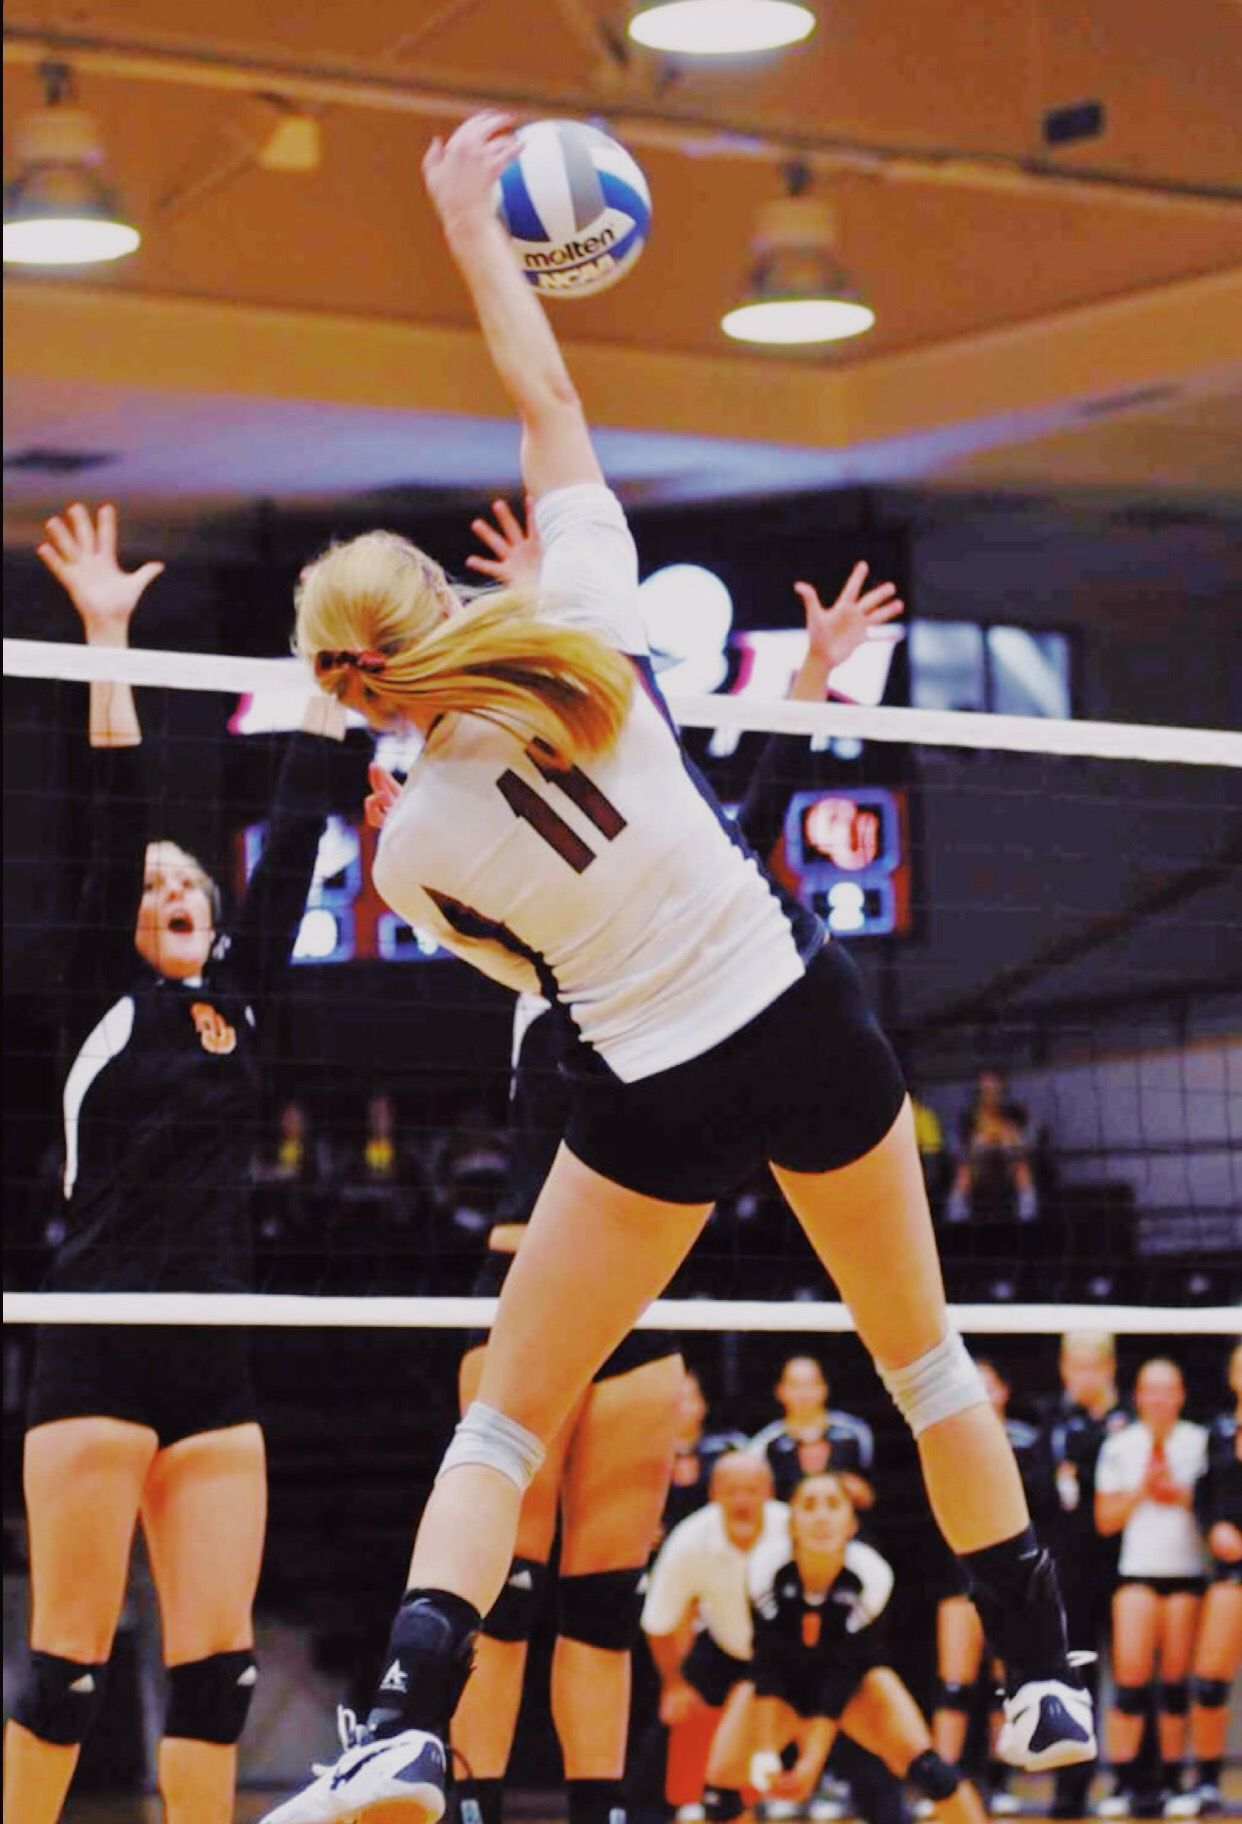 Volleyball Goals In 2020 Volleyball Workouts Volleyball Photos Volleyball Photography